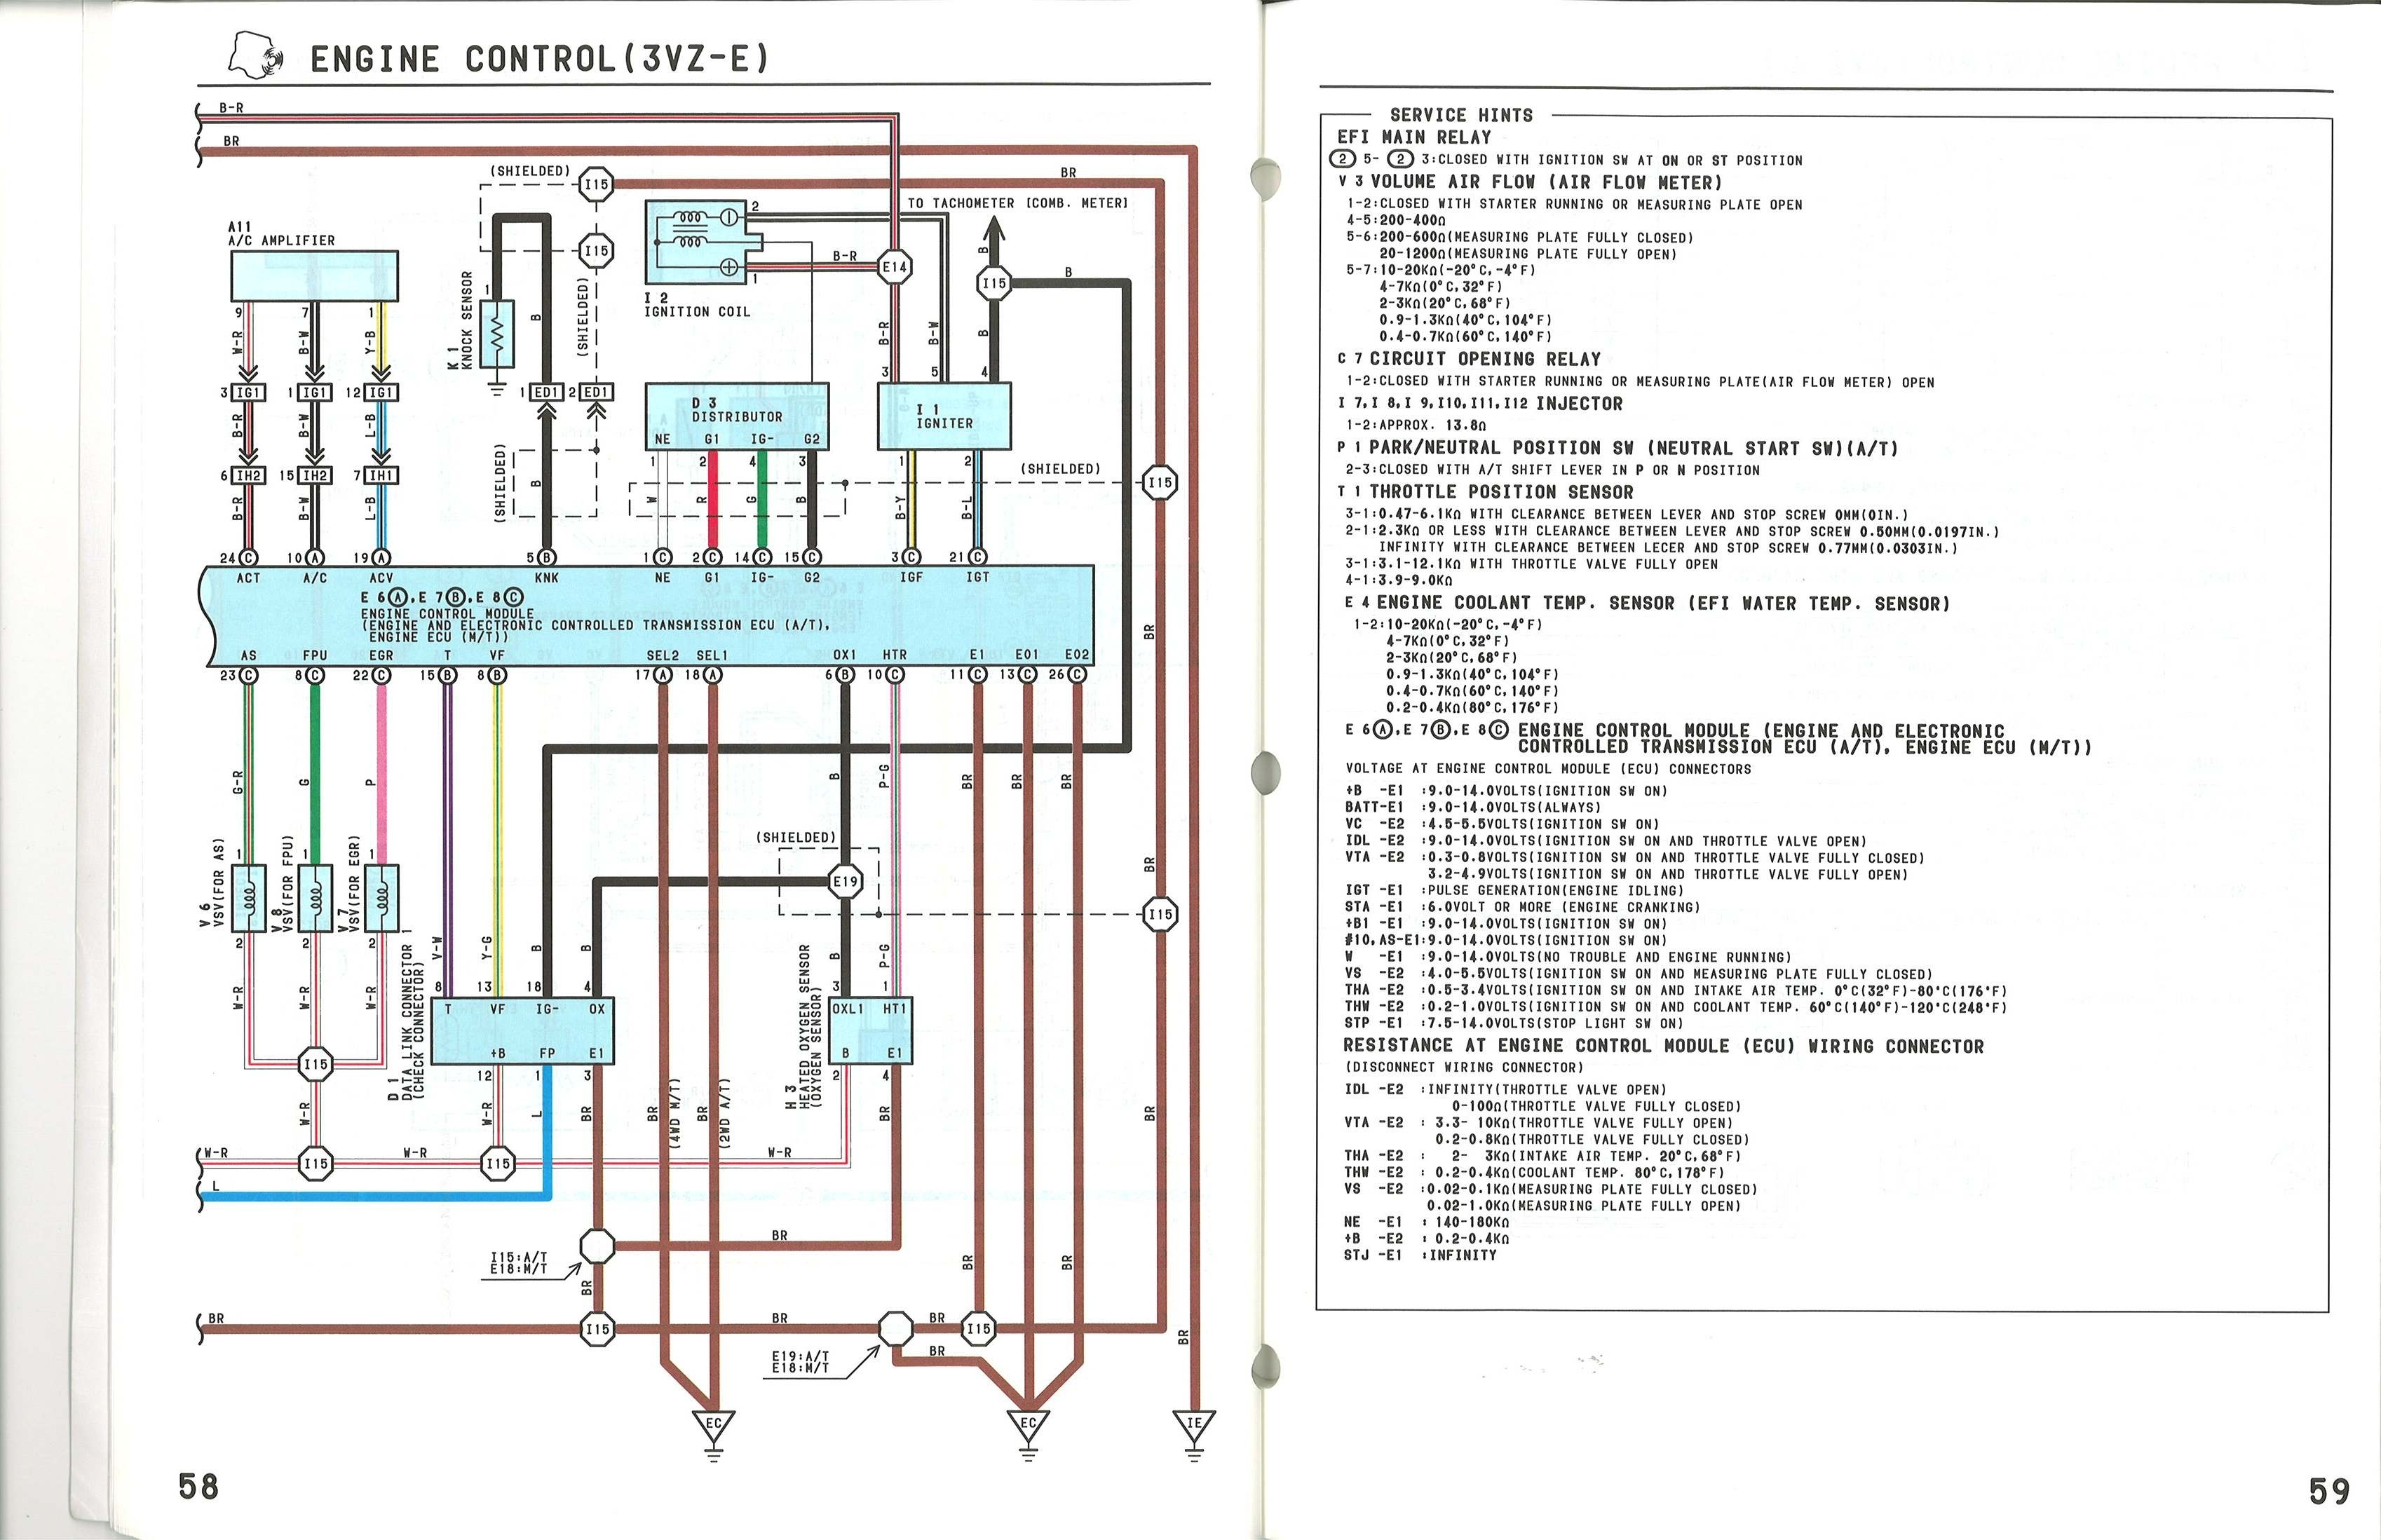 7mgte wiring harness diagram 1981 cb900 ecu for 1988 3vz-e - yotatech forums in 93 toyota 4runner | fuse box and ...